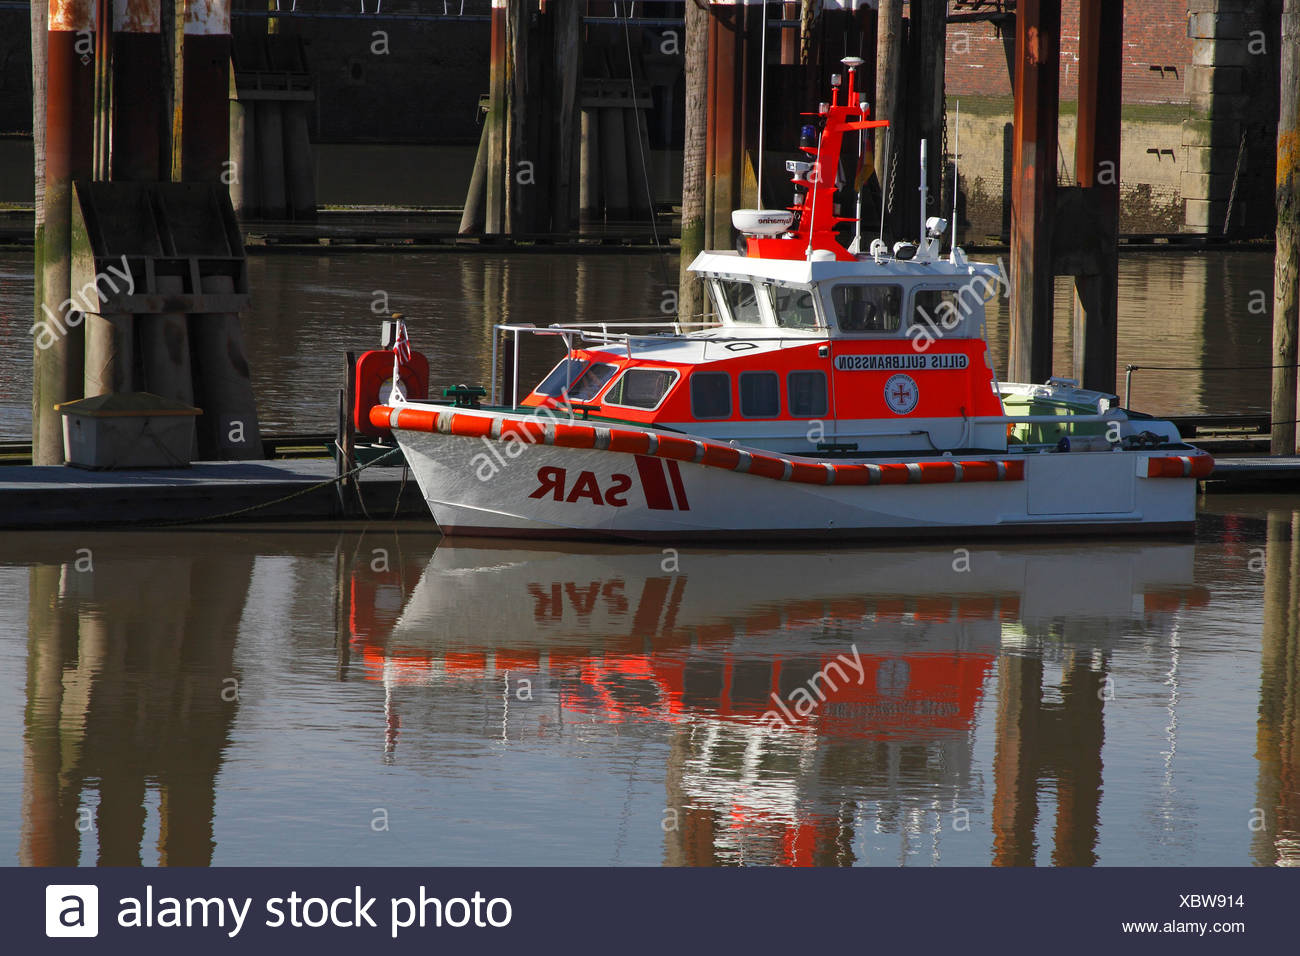 SAR rescue boat at the lock gates between the Elbe River and the Nord-Ostsee-Kanal, Kiel-Canal, boat 'Gillis Gullbransson', Deu - Stock Image